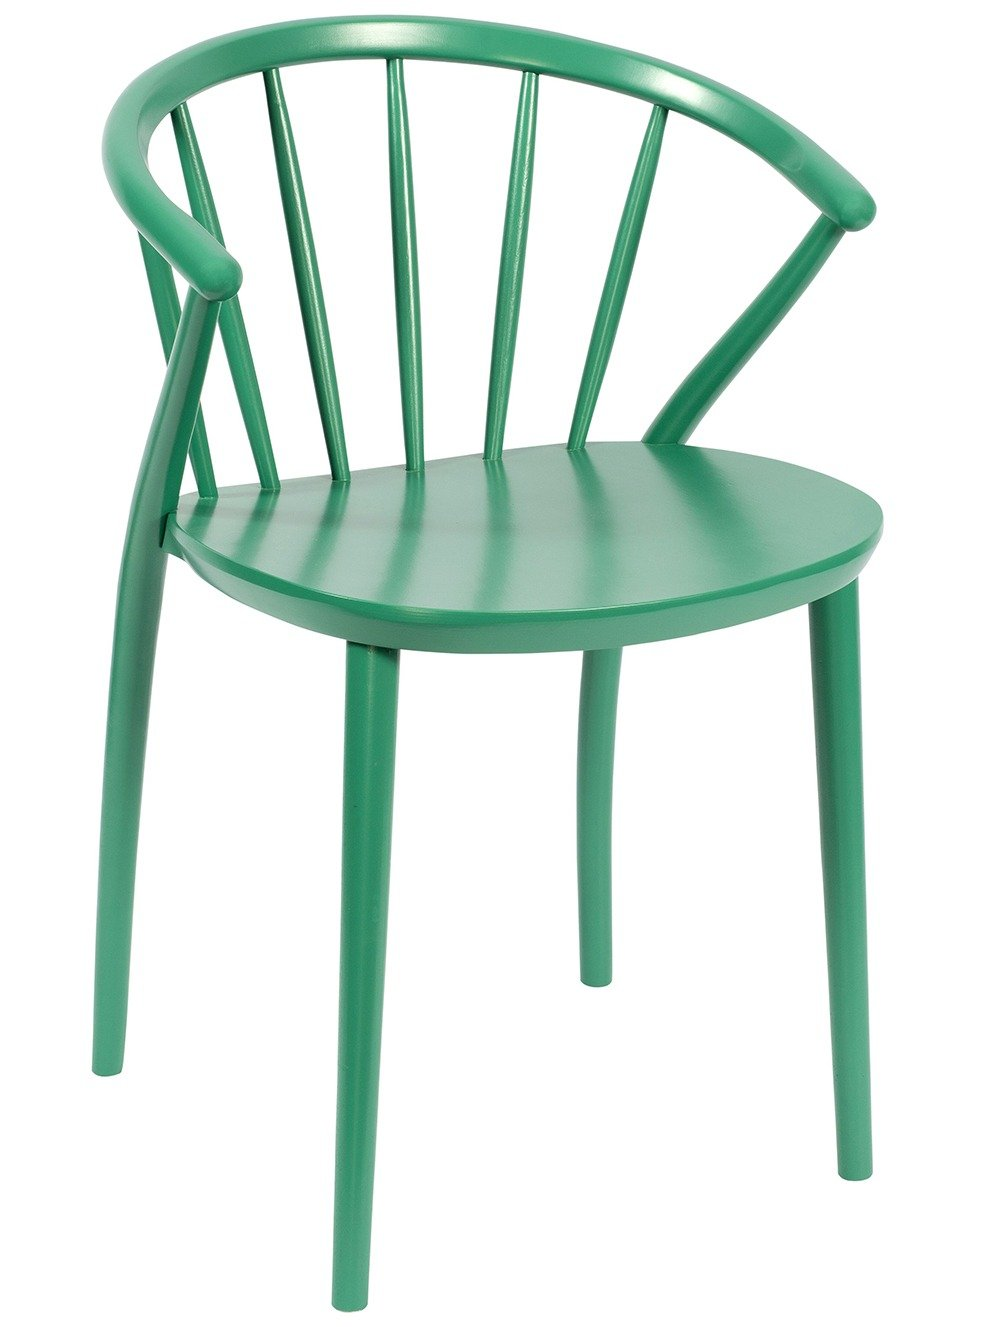 Custom Camborne Arm Chairs | Carlick Contract Furniture